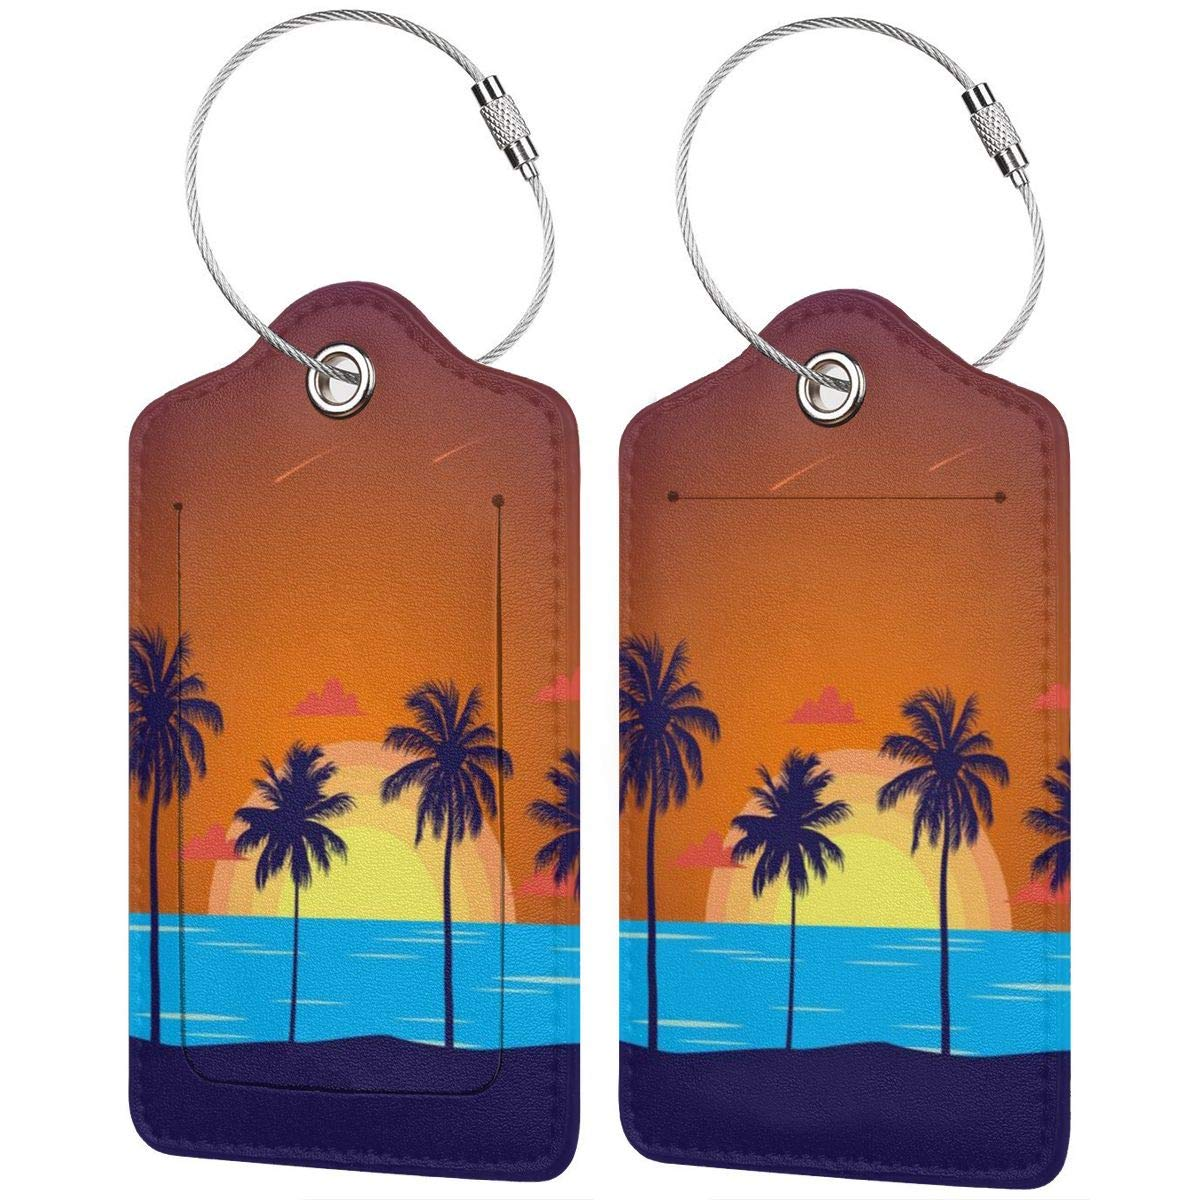 Sunset Beach Coconut Trees Leather Luggage Tags Suitcase Tag Travel Bag Labels With Privacy Cover For Men Women 2 Pack 4 Pack